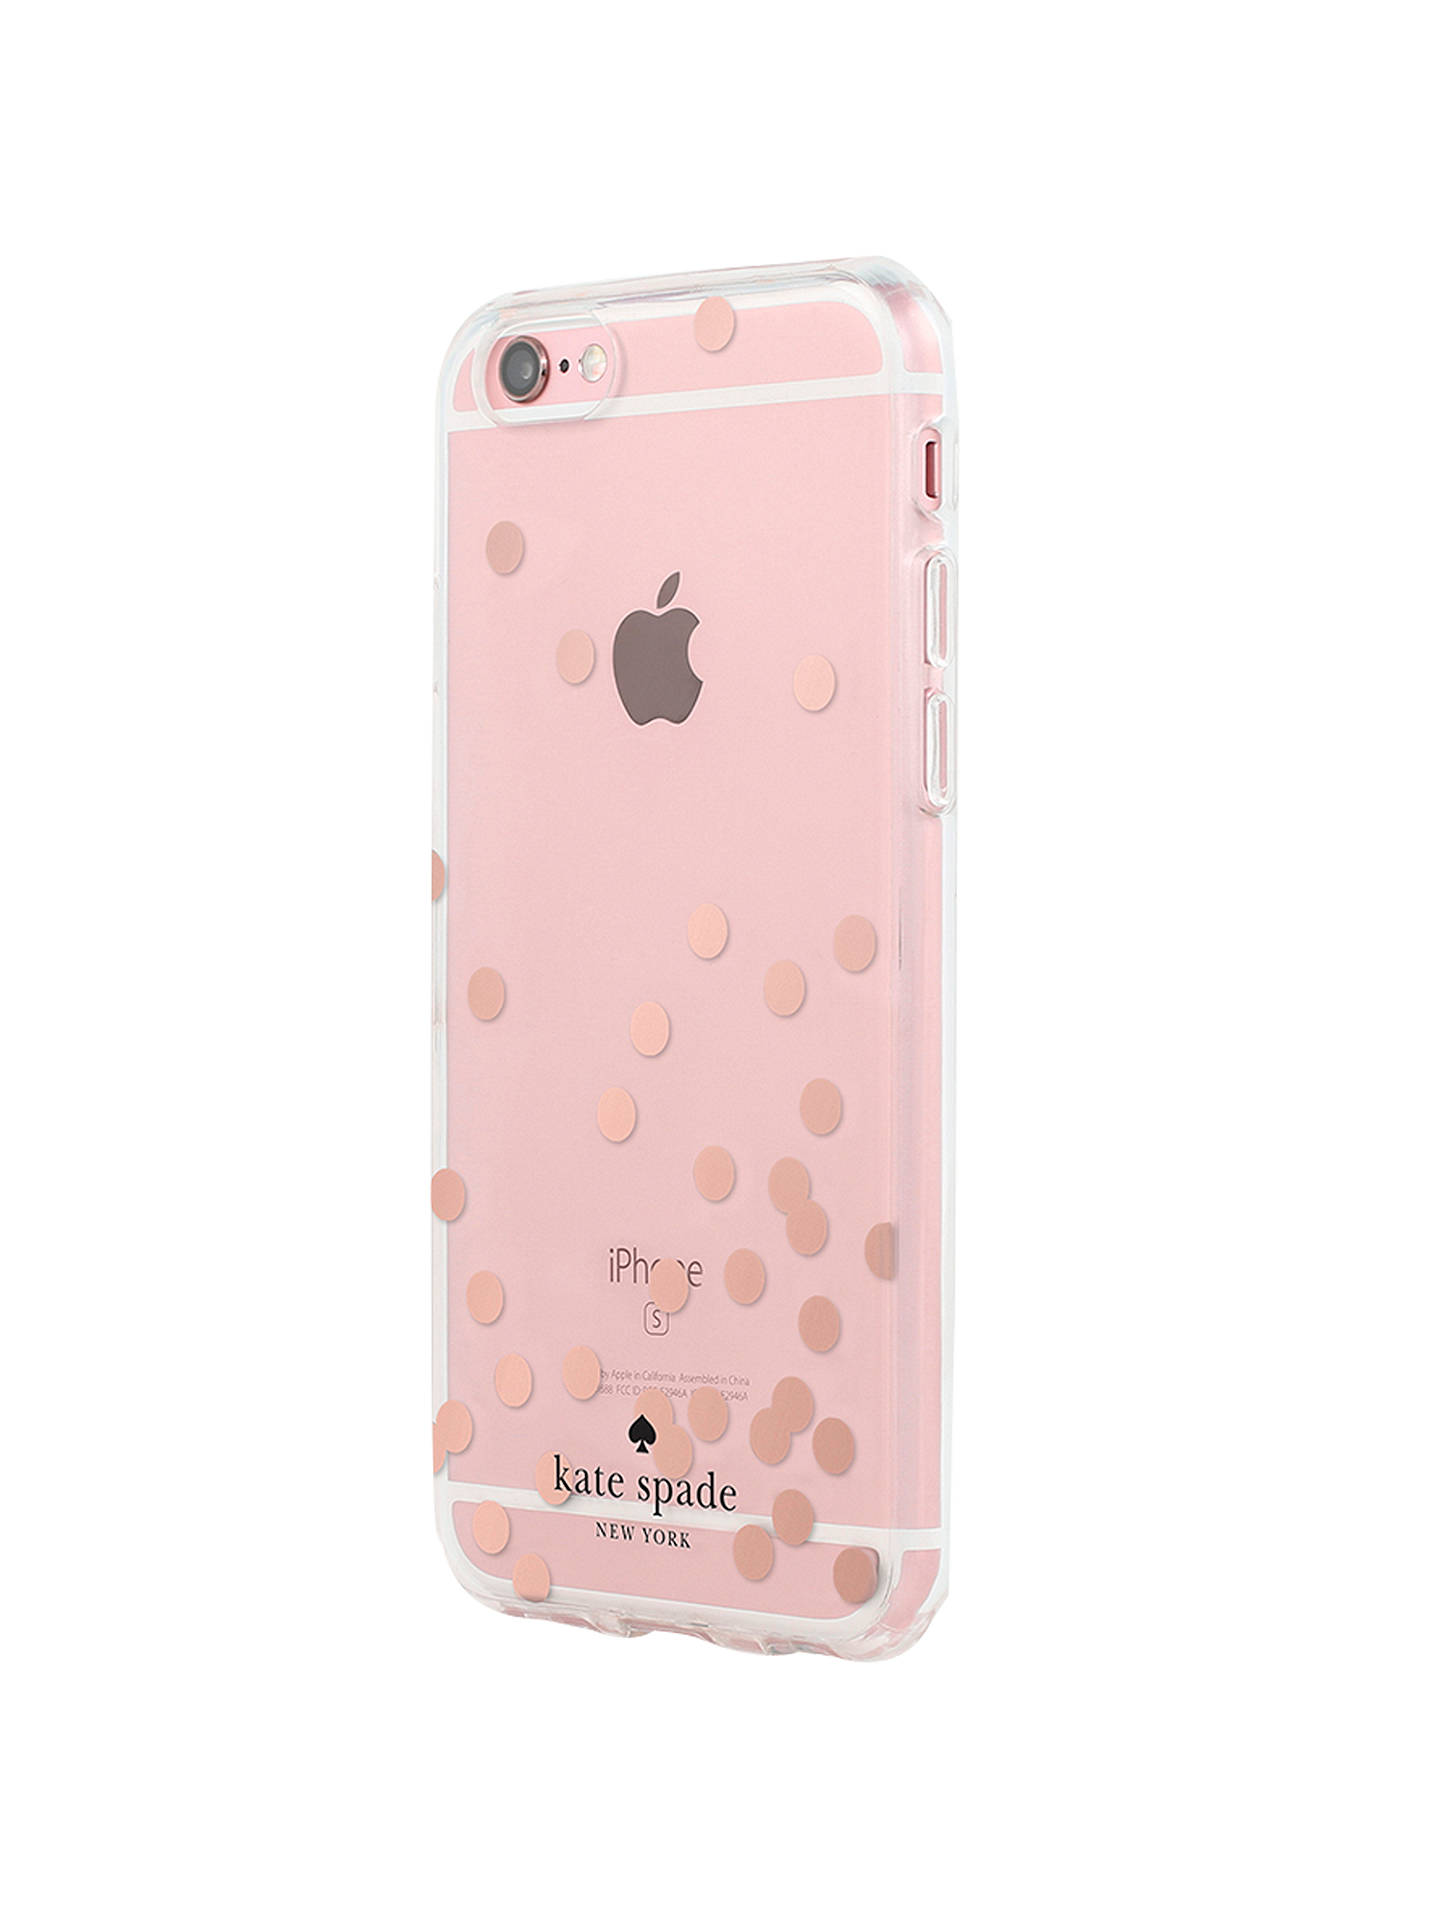 Buykate spade new york Hardshell Case for iPhone 6 6s c5c77618e0